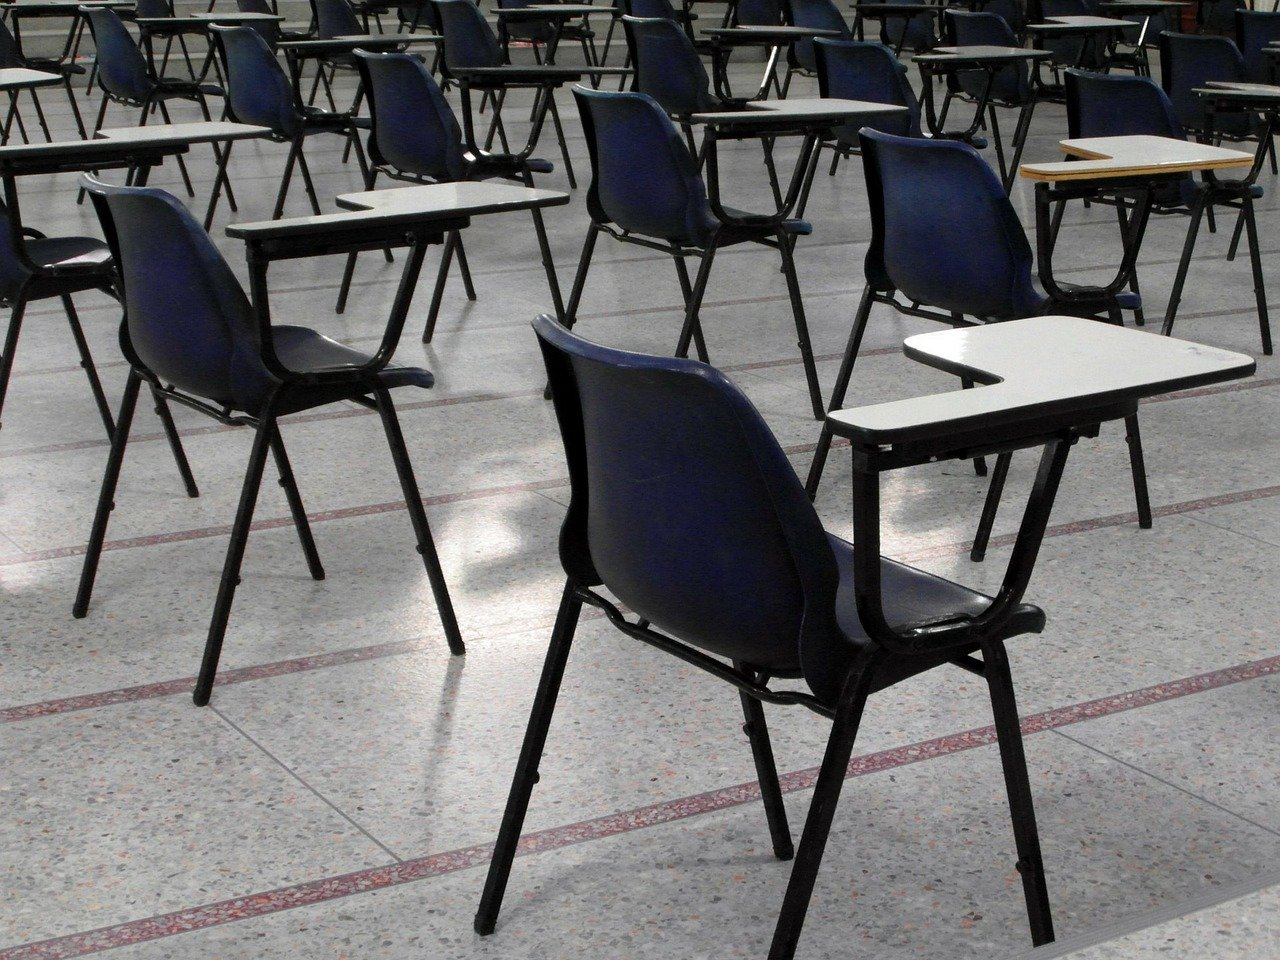 Empty school chairs. Schools to re-open after Easter if UK coronavirus lockdown continues to work, say ministers